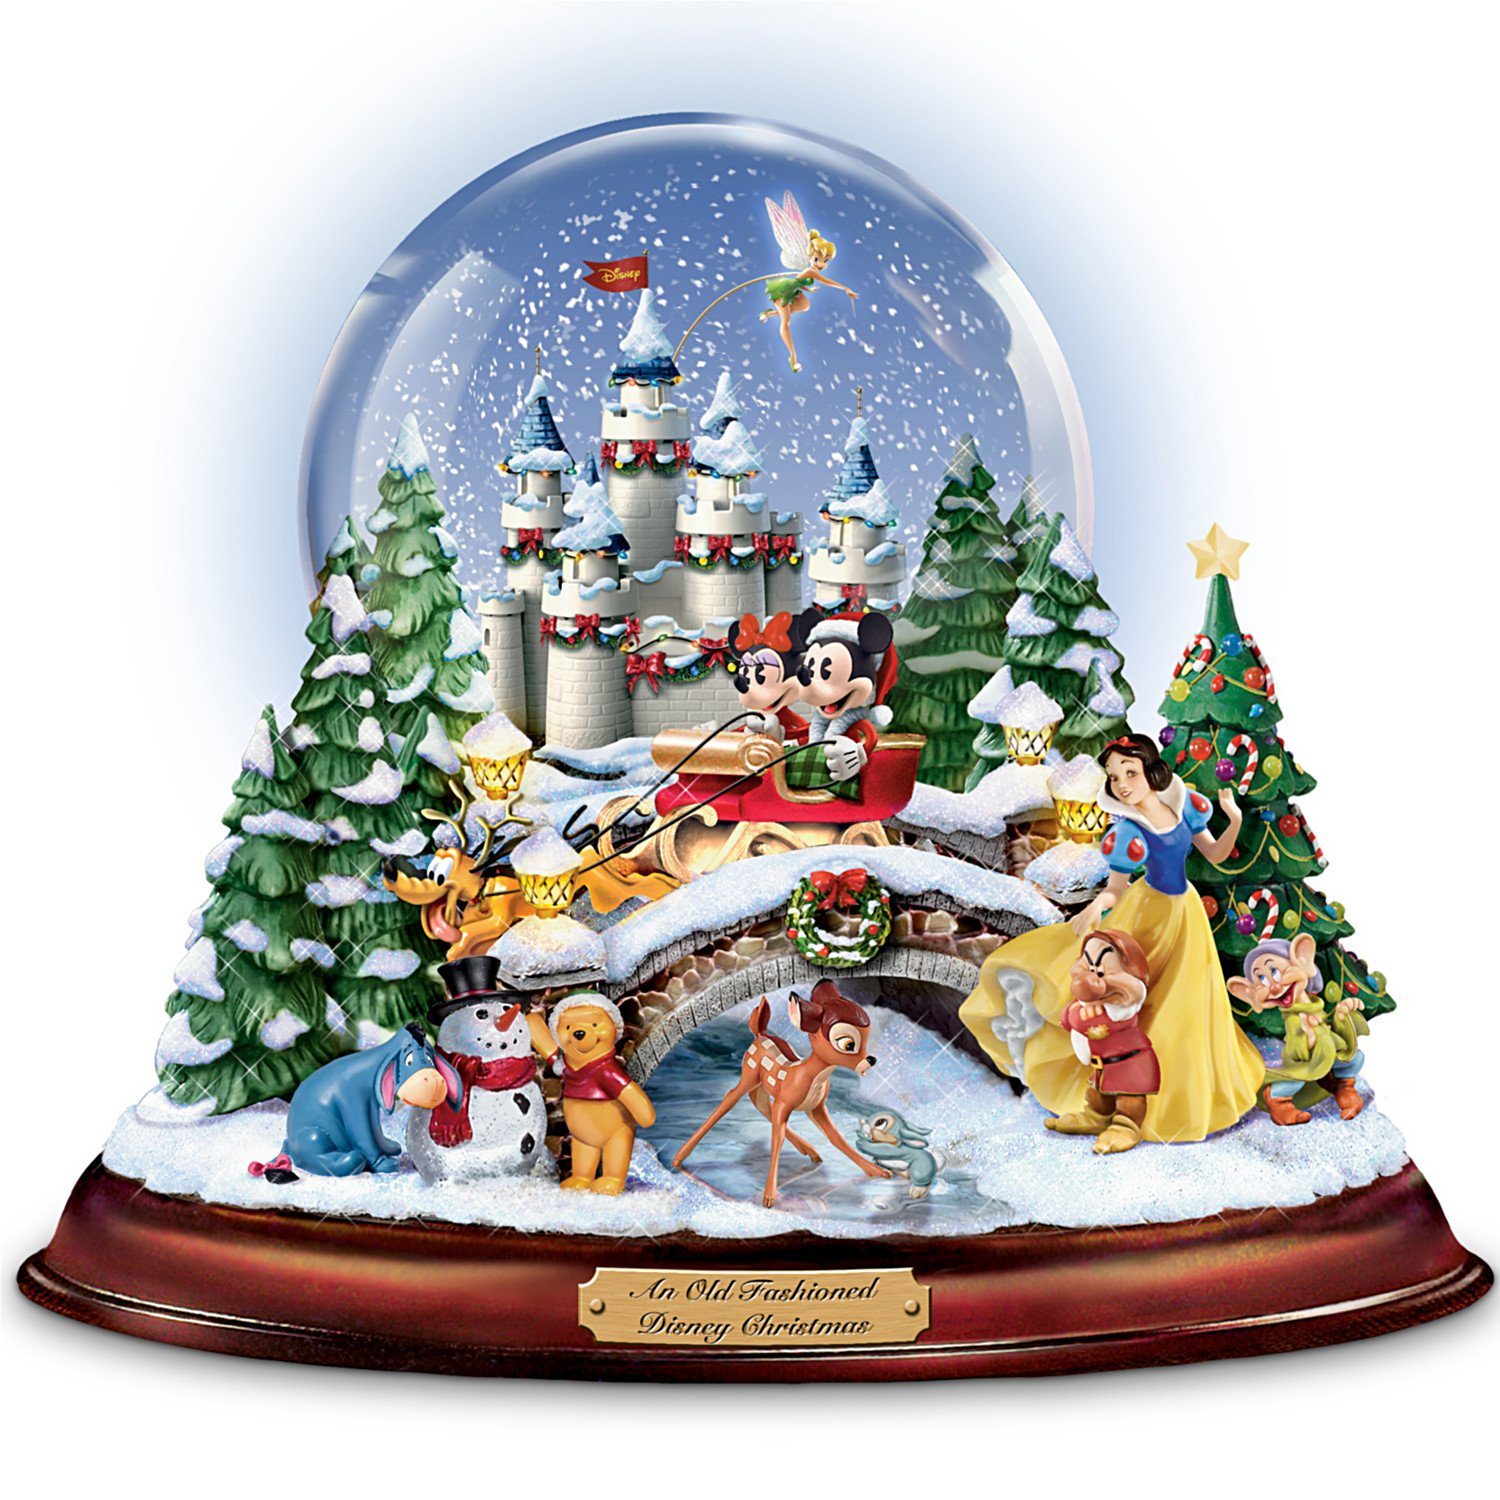 Image of Adorable Lighted Musical Disney Christmas Snow Globe